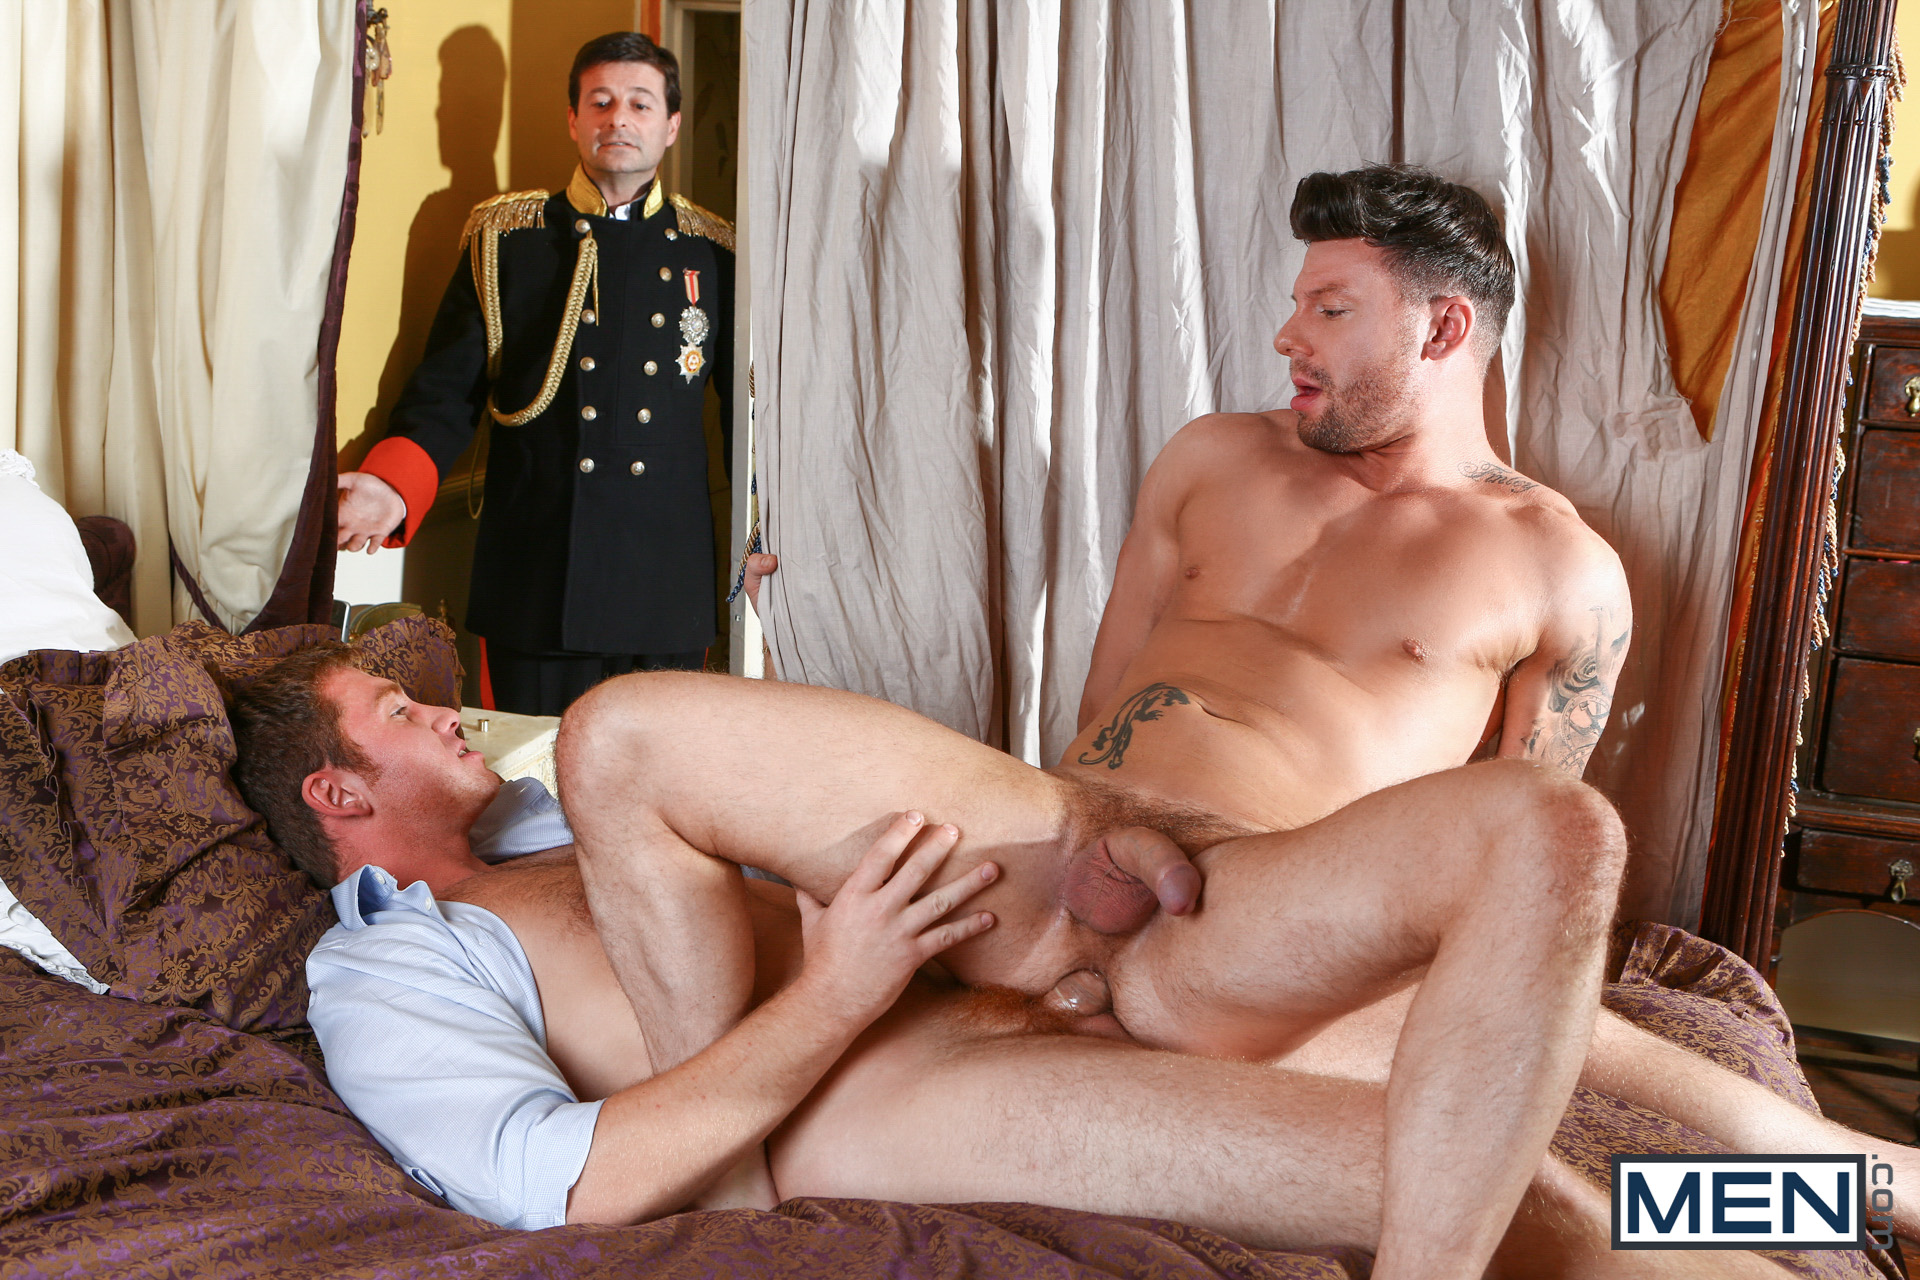 Xxx Porn Gay Men Bisexual